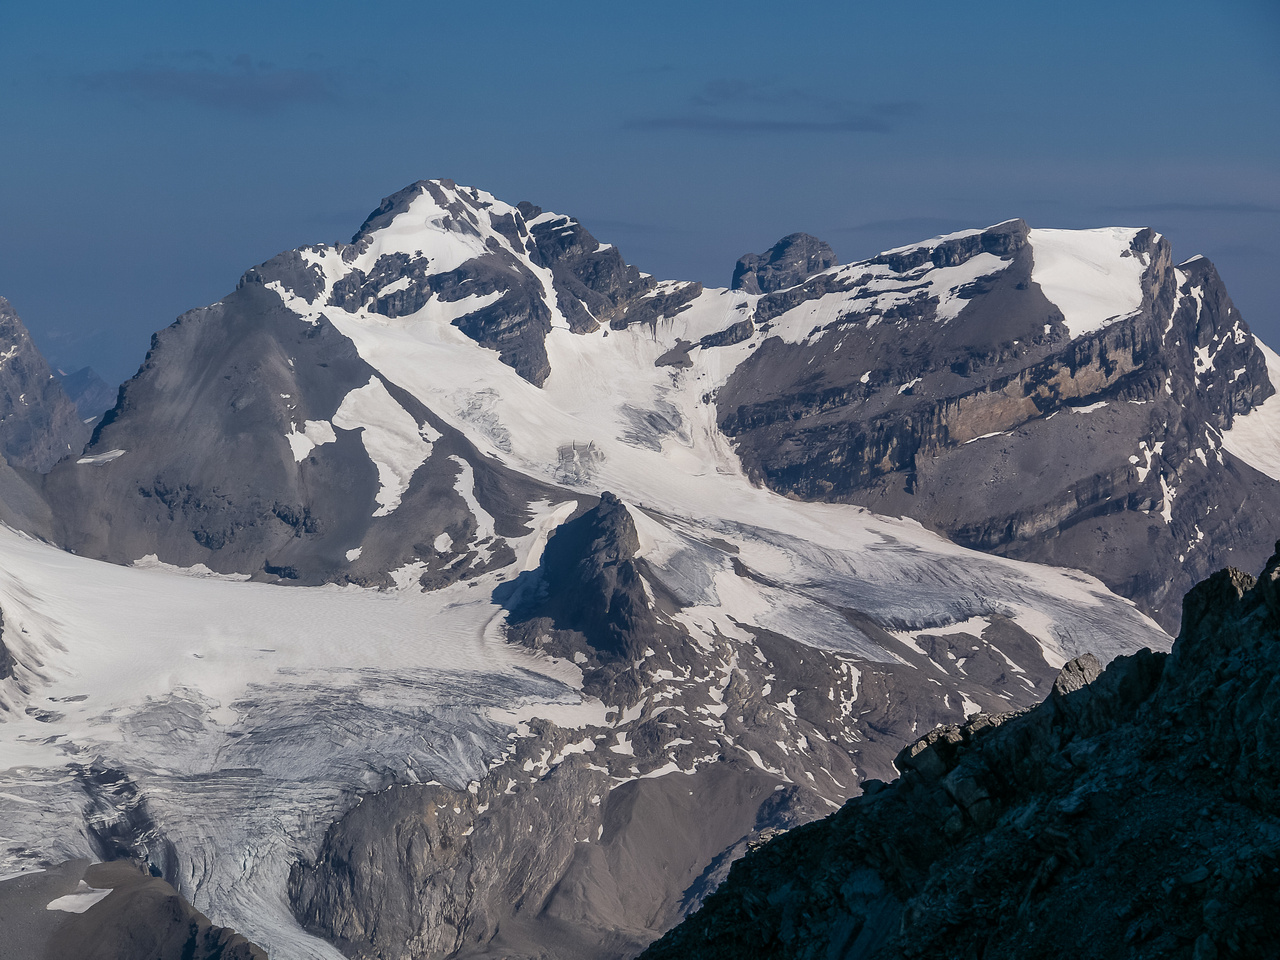 Mount Cirrus (Huntington) is another peak that Eric and I climbed together in 2014.